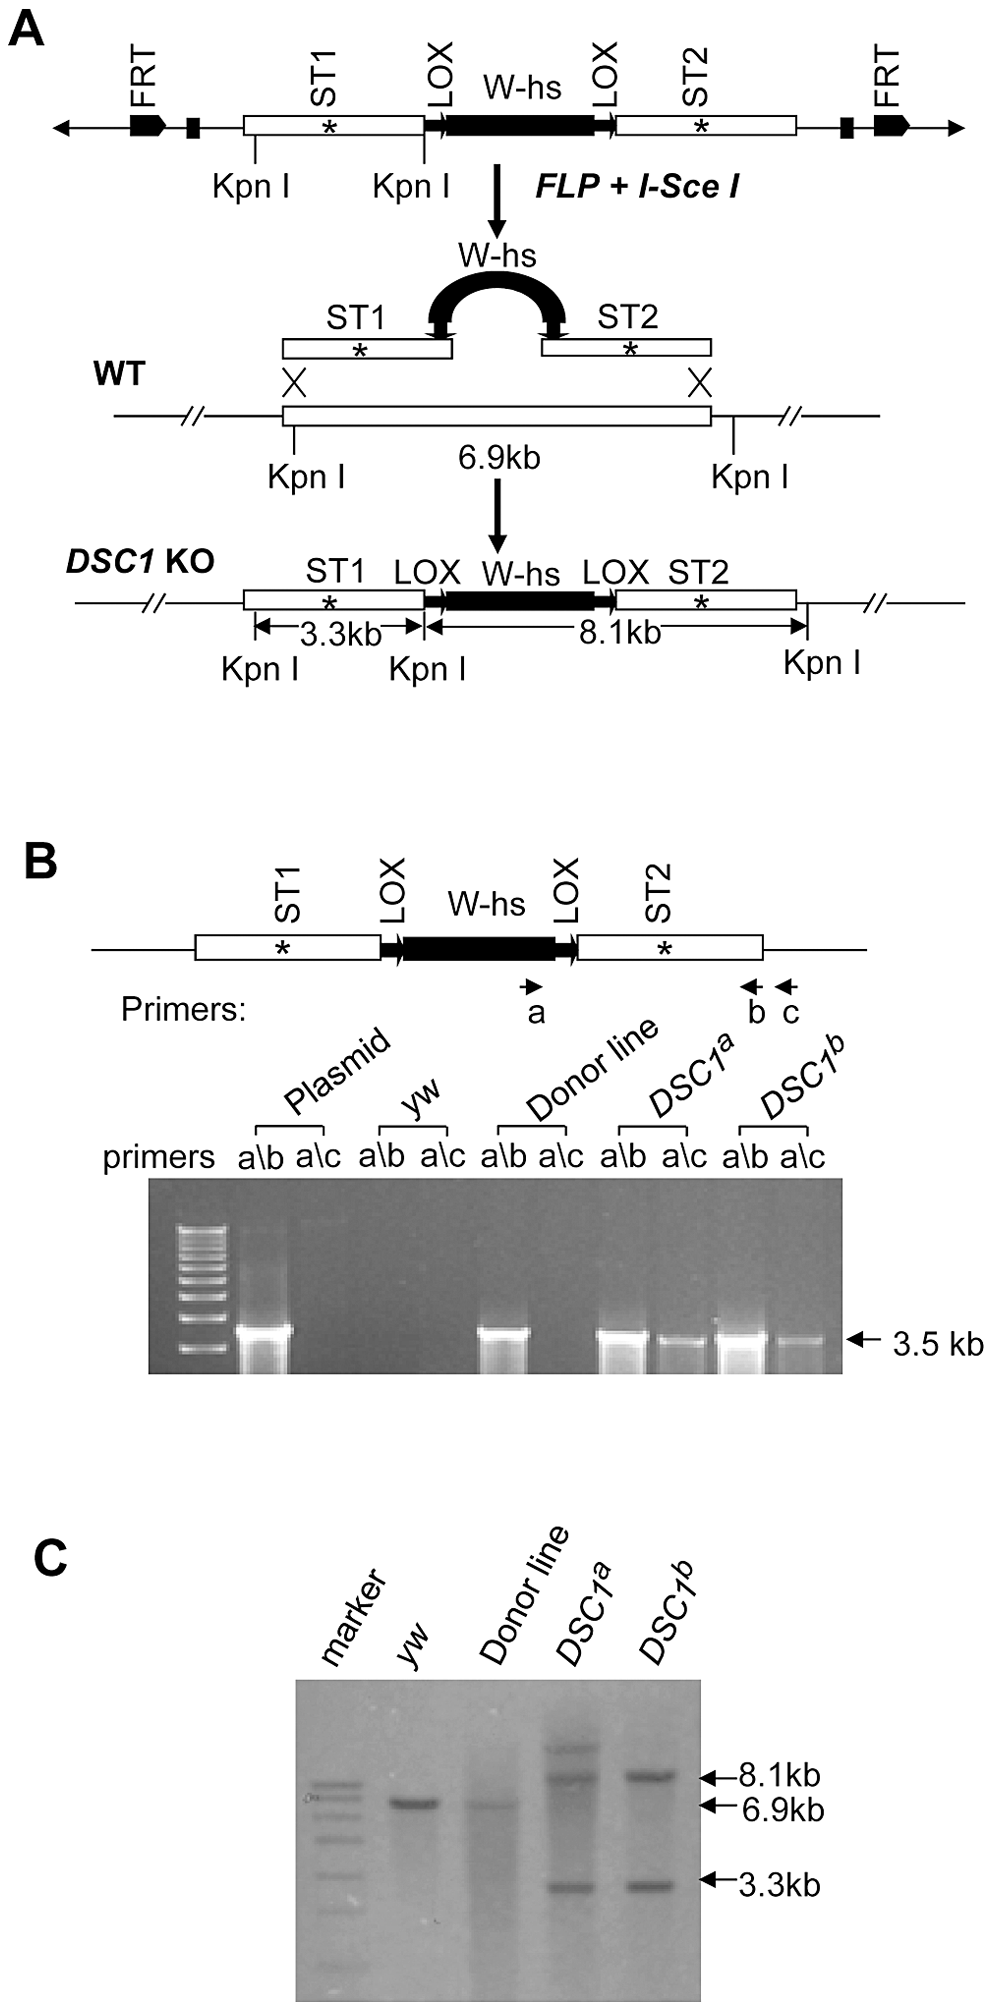 Method for targeted gene knockout and confirmation by PCR and Southern blot analysis.